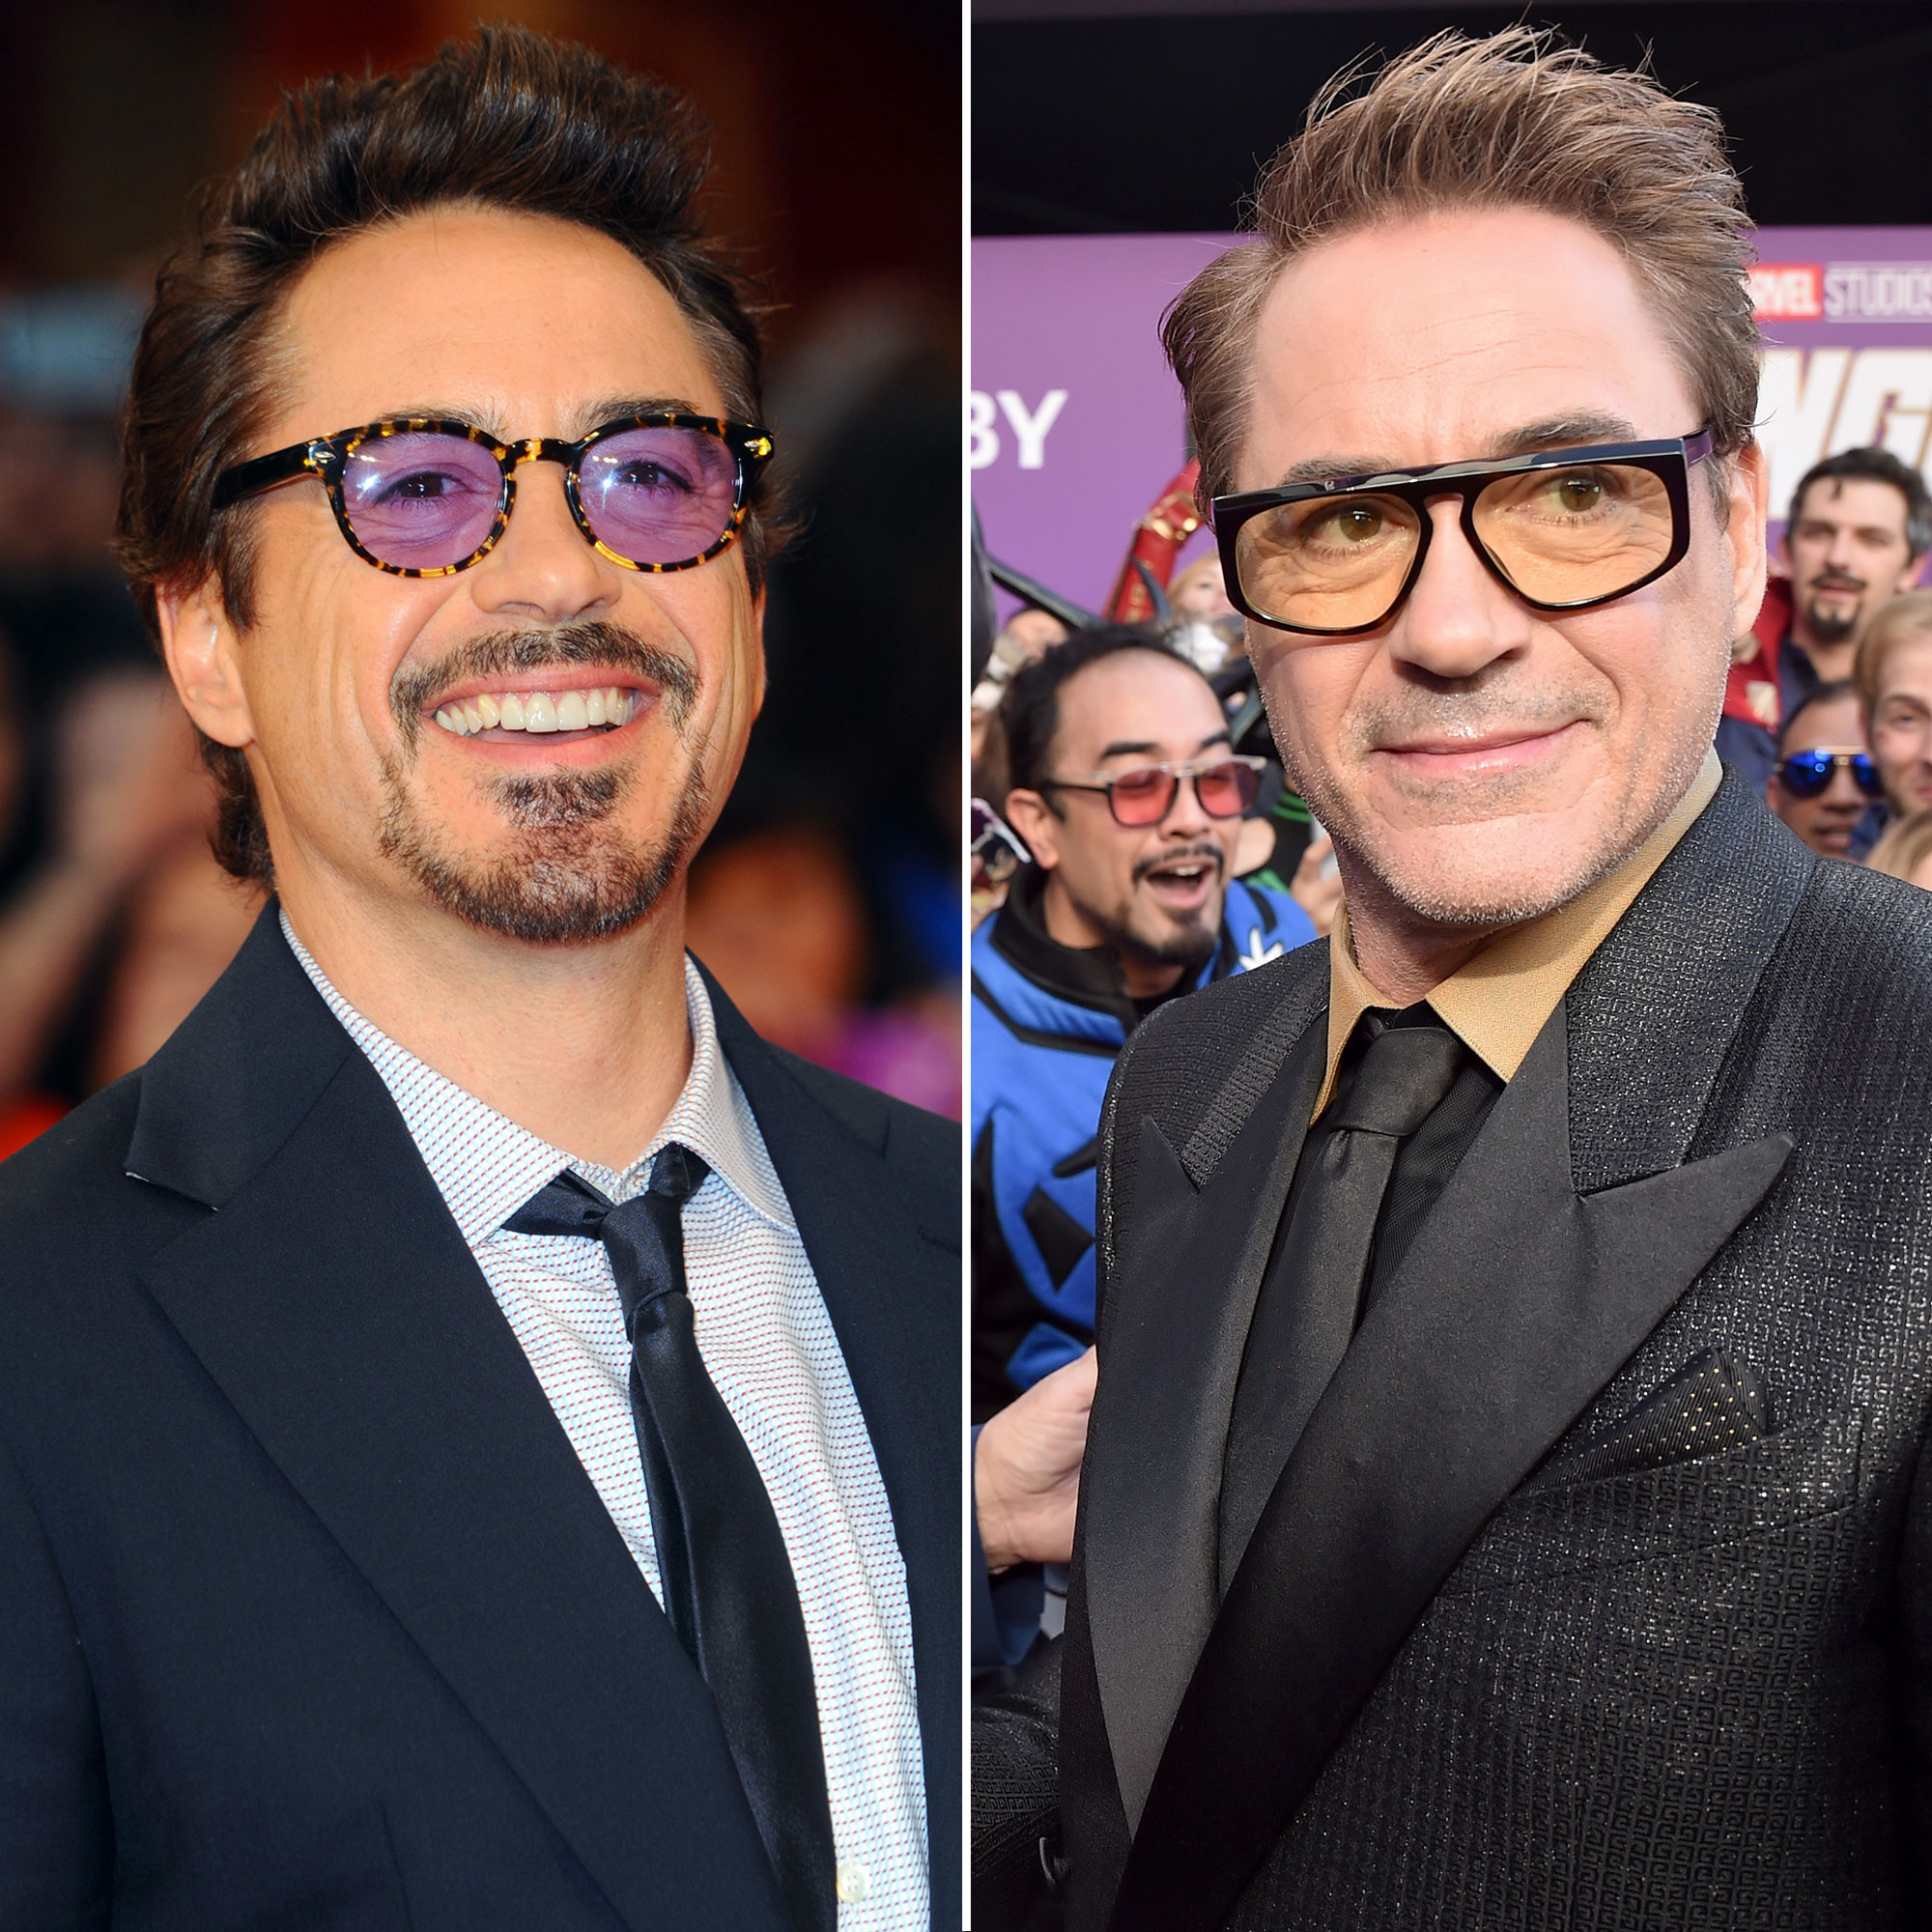 Robert Downey Jr Avengers Premiere First Super Red Carpet to Their Last - LONDON – APR 19: Robert Downey Jr attends the Marvel Avengers Assemble European Premiere on April 19, 2012 at the Vue Cinema, Westfield Shepards Bush in London. (Photo by Anthony Harvey/Getty Images)